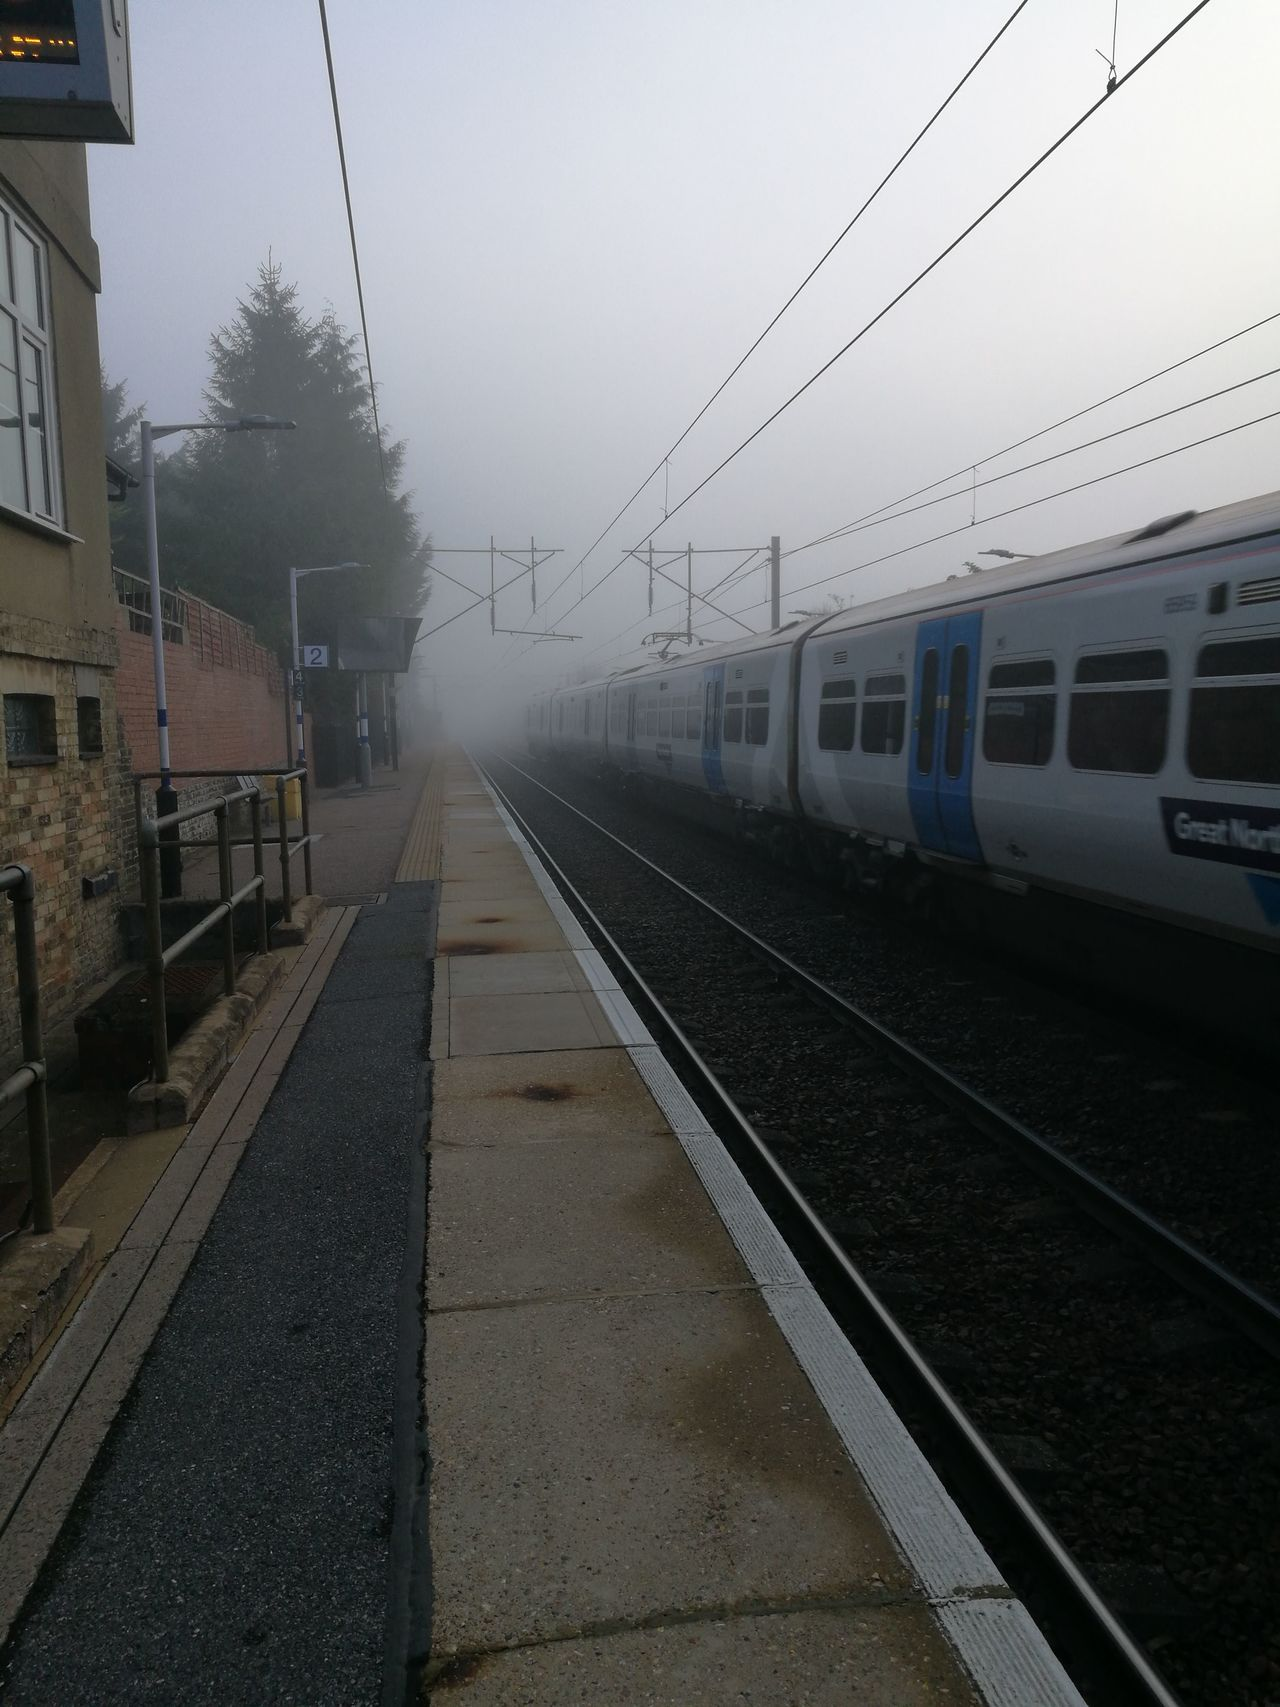 Transportation Rail Transportation Railroad Track Train - Vehicle Mode Of Transport Rain Railroad Station Horizontal Public Transportation Railroad Station Platform Outdoors City Sky Fog No People Day Foggy Morning Cable Train Line Train